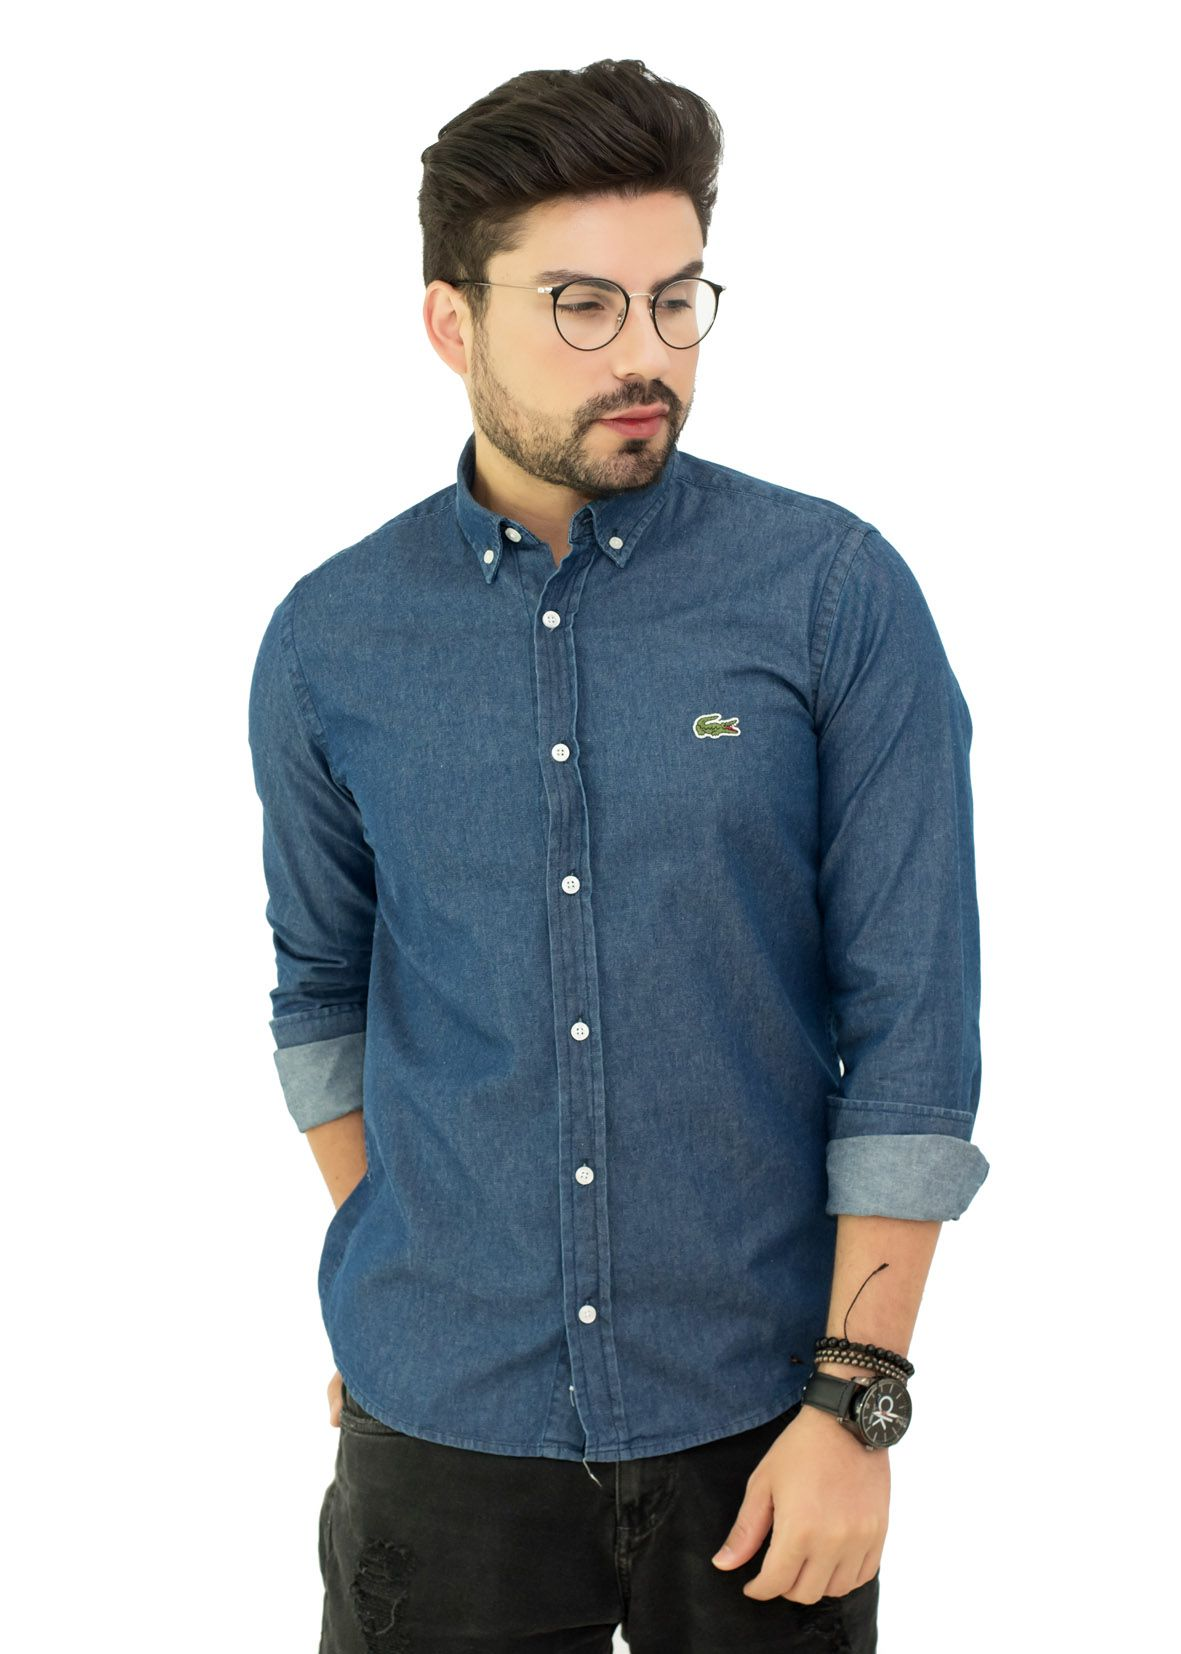 Camisa Jeans LCT Azul Escuro